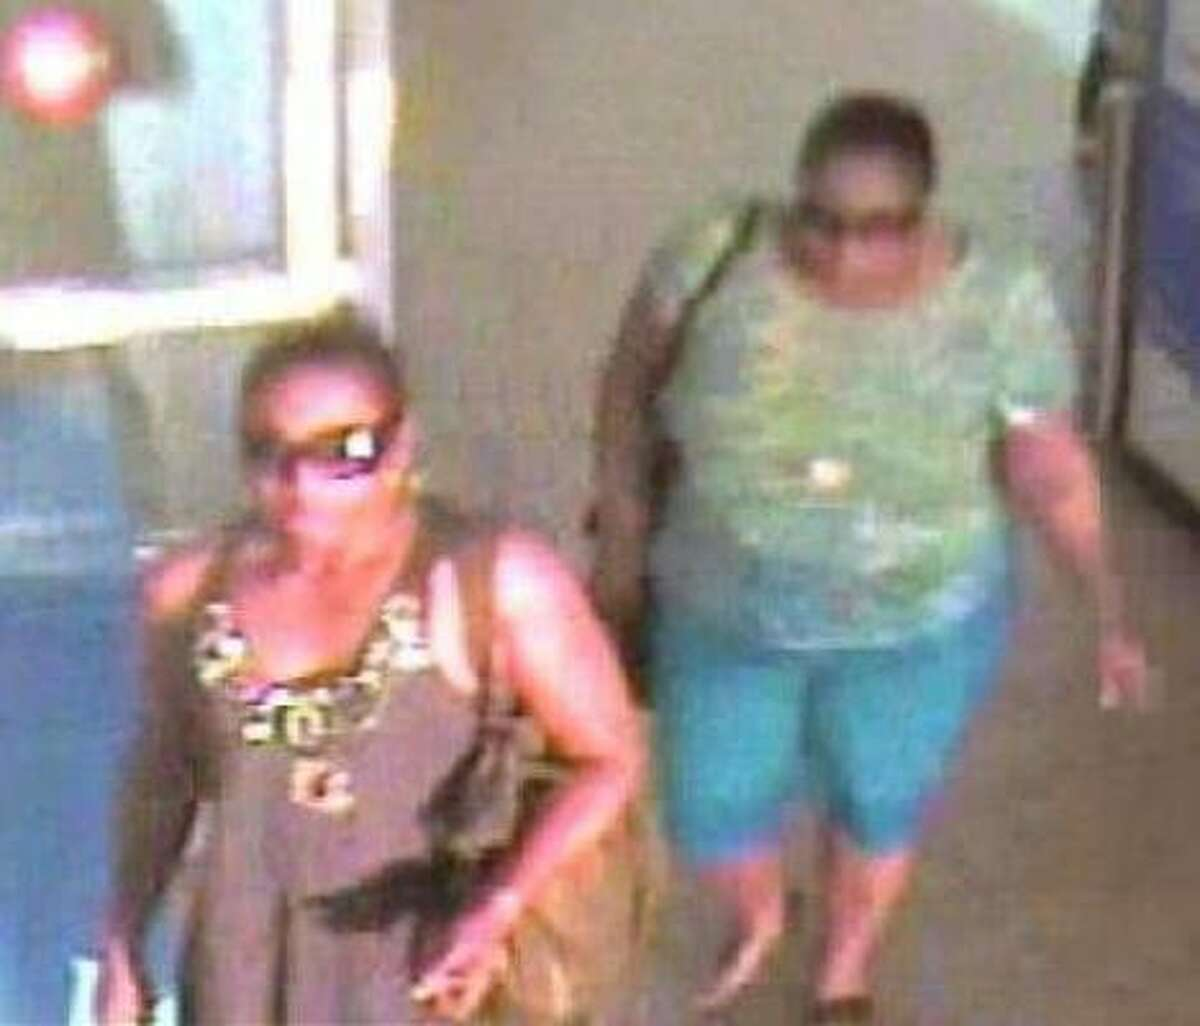 Police in Richmond are asking for the public's help identifying these two women.